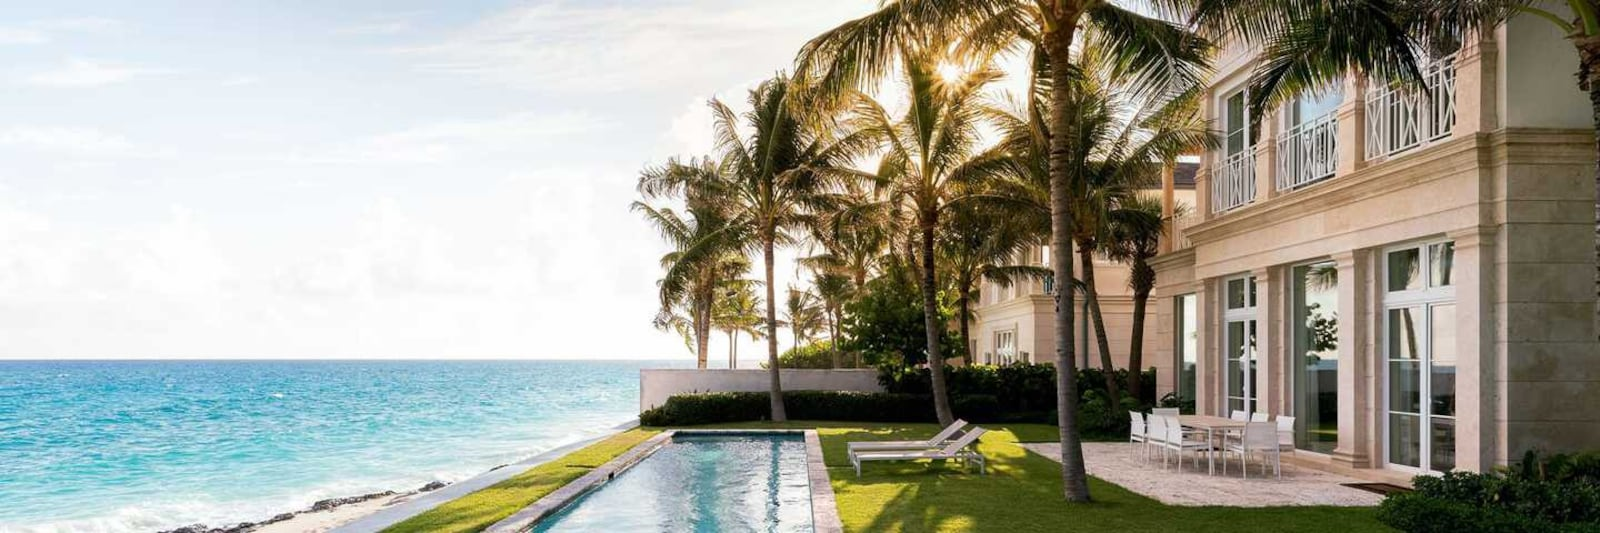 Luxury rentals in The Bahamas